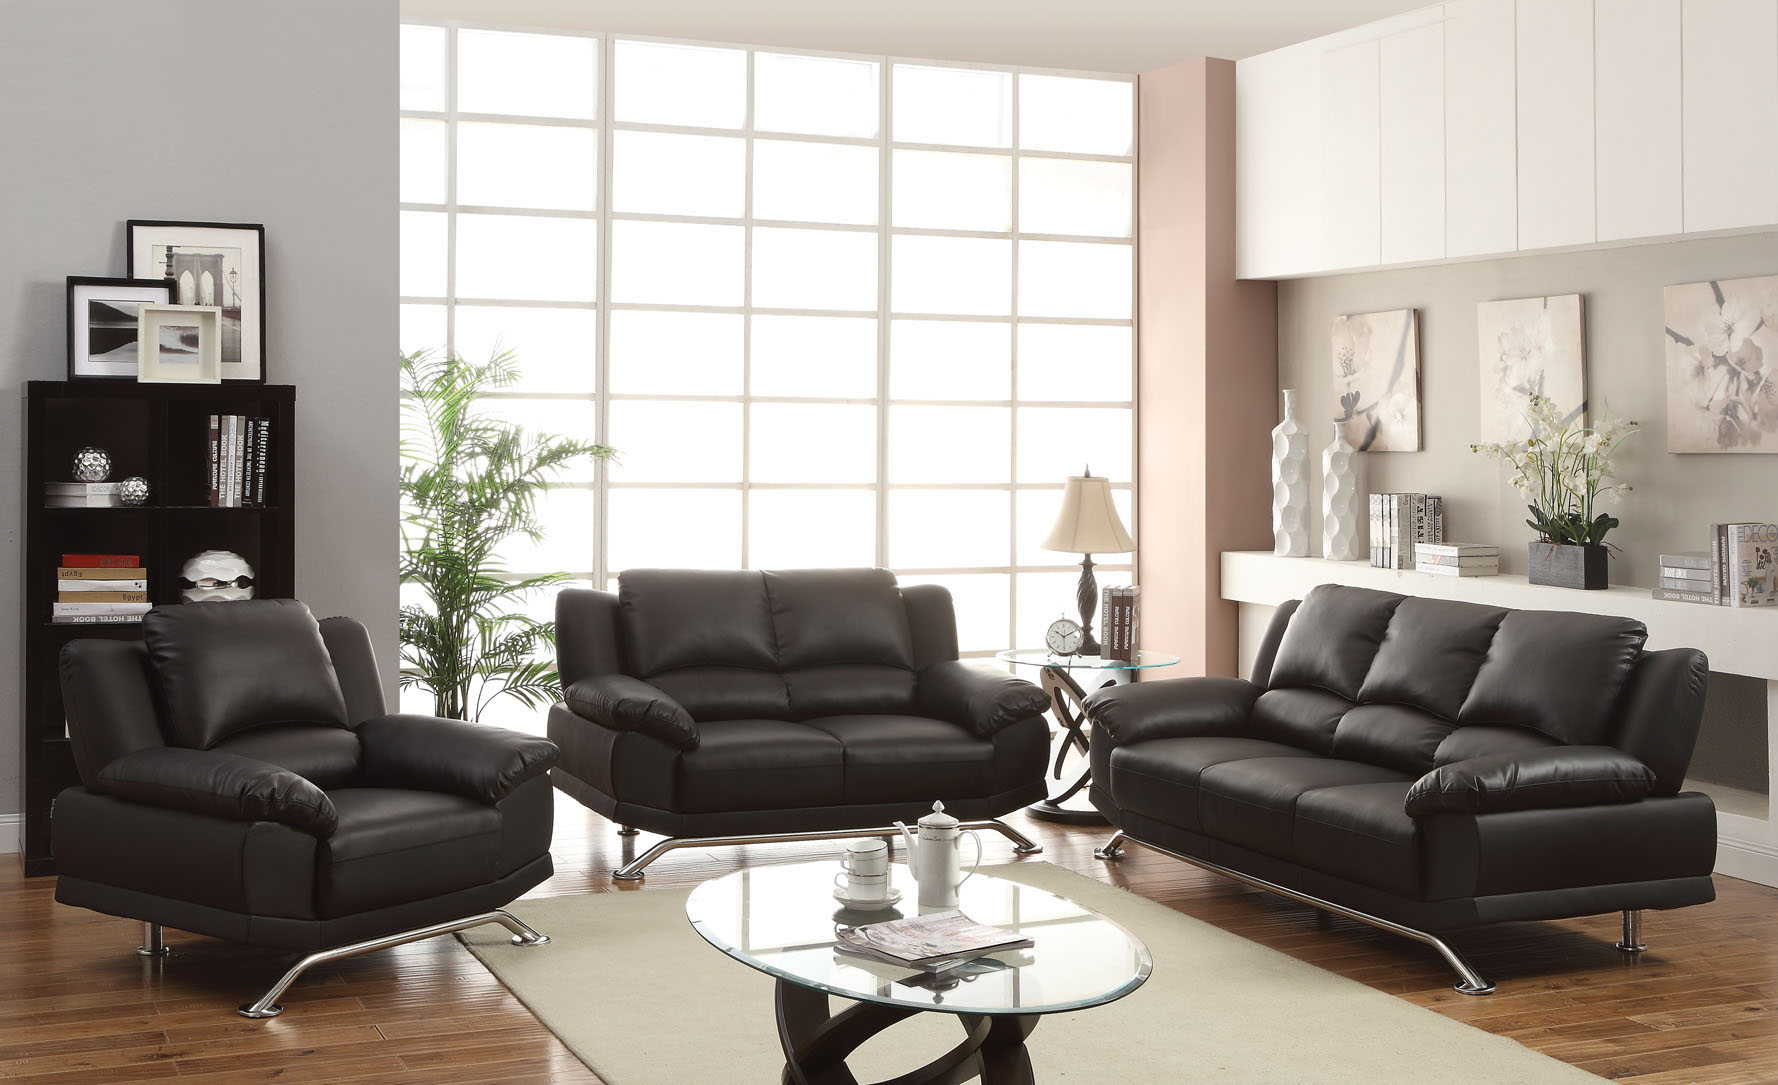 Best Maigan Sofa Set Acme Furniture Home Gallery Stores 640 x 480